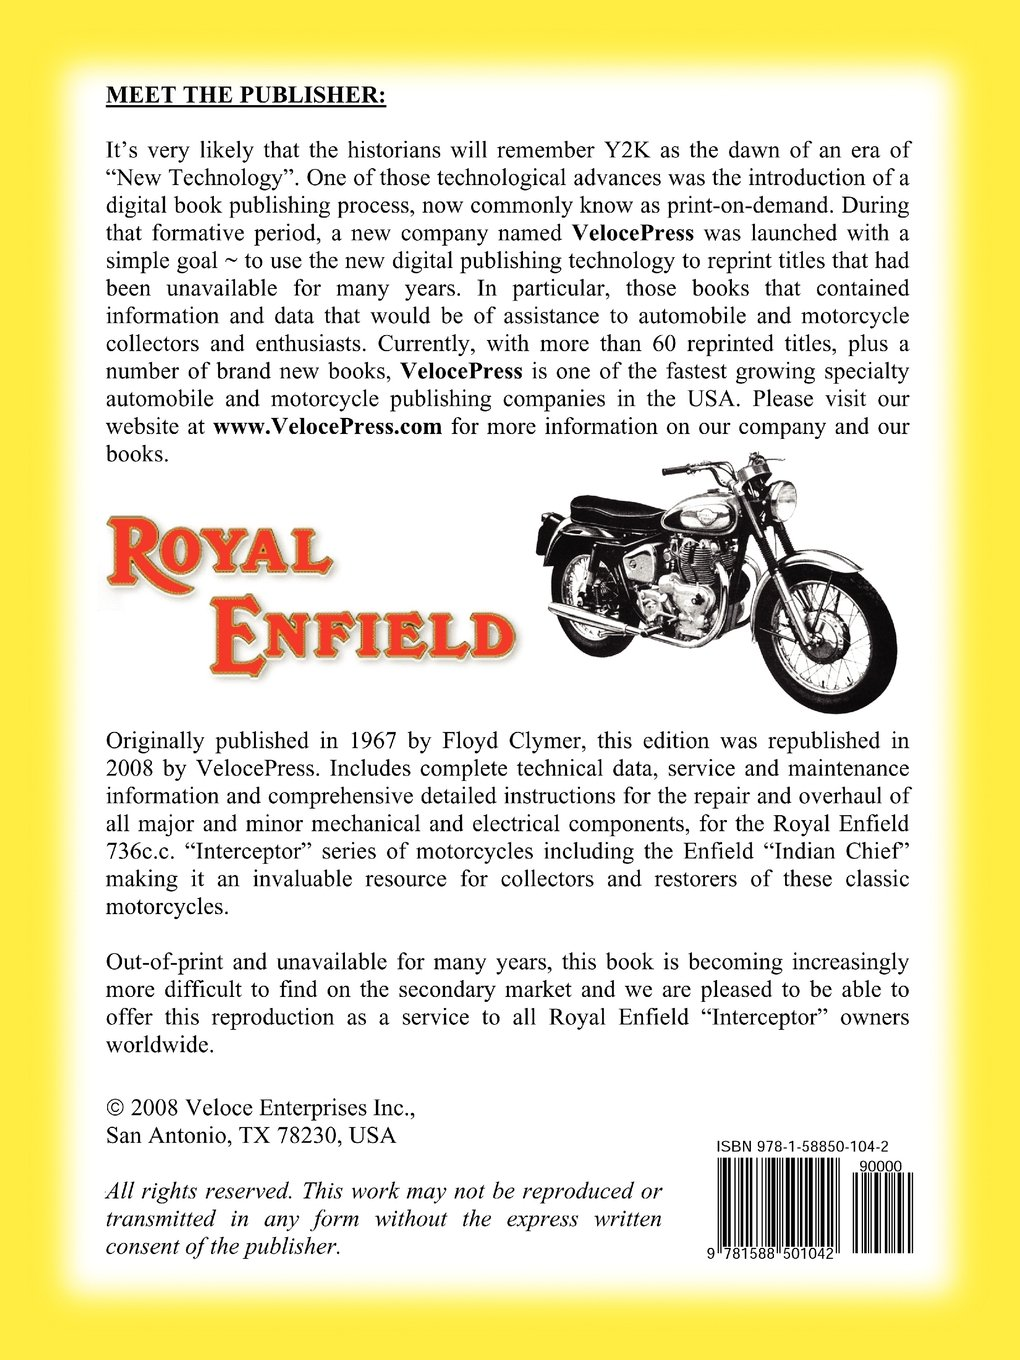 Buy Royal Enfield Factory Workshop Manual: 736cc INTERCEPTOR AND ENFIELD  INDIAN CHIEF Book Online at Low Prices in India | Royal Enfield Factory  Workshop ...